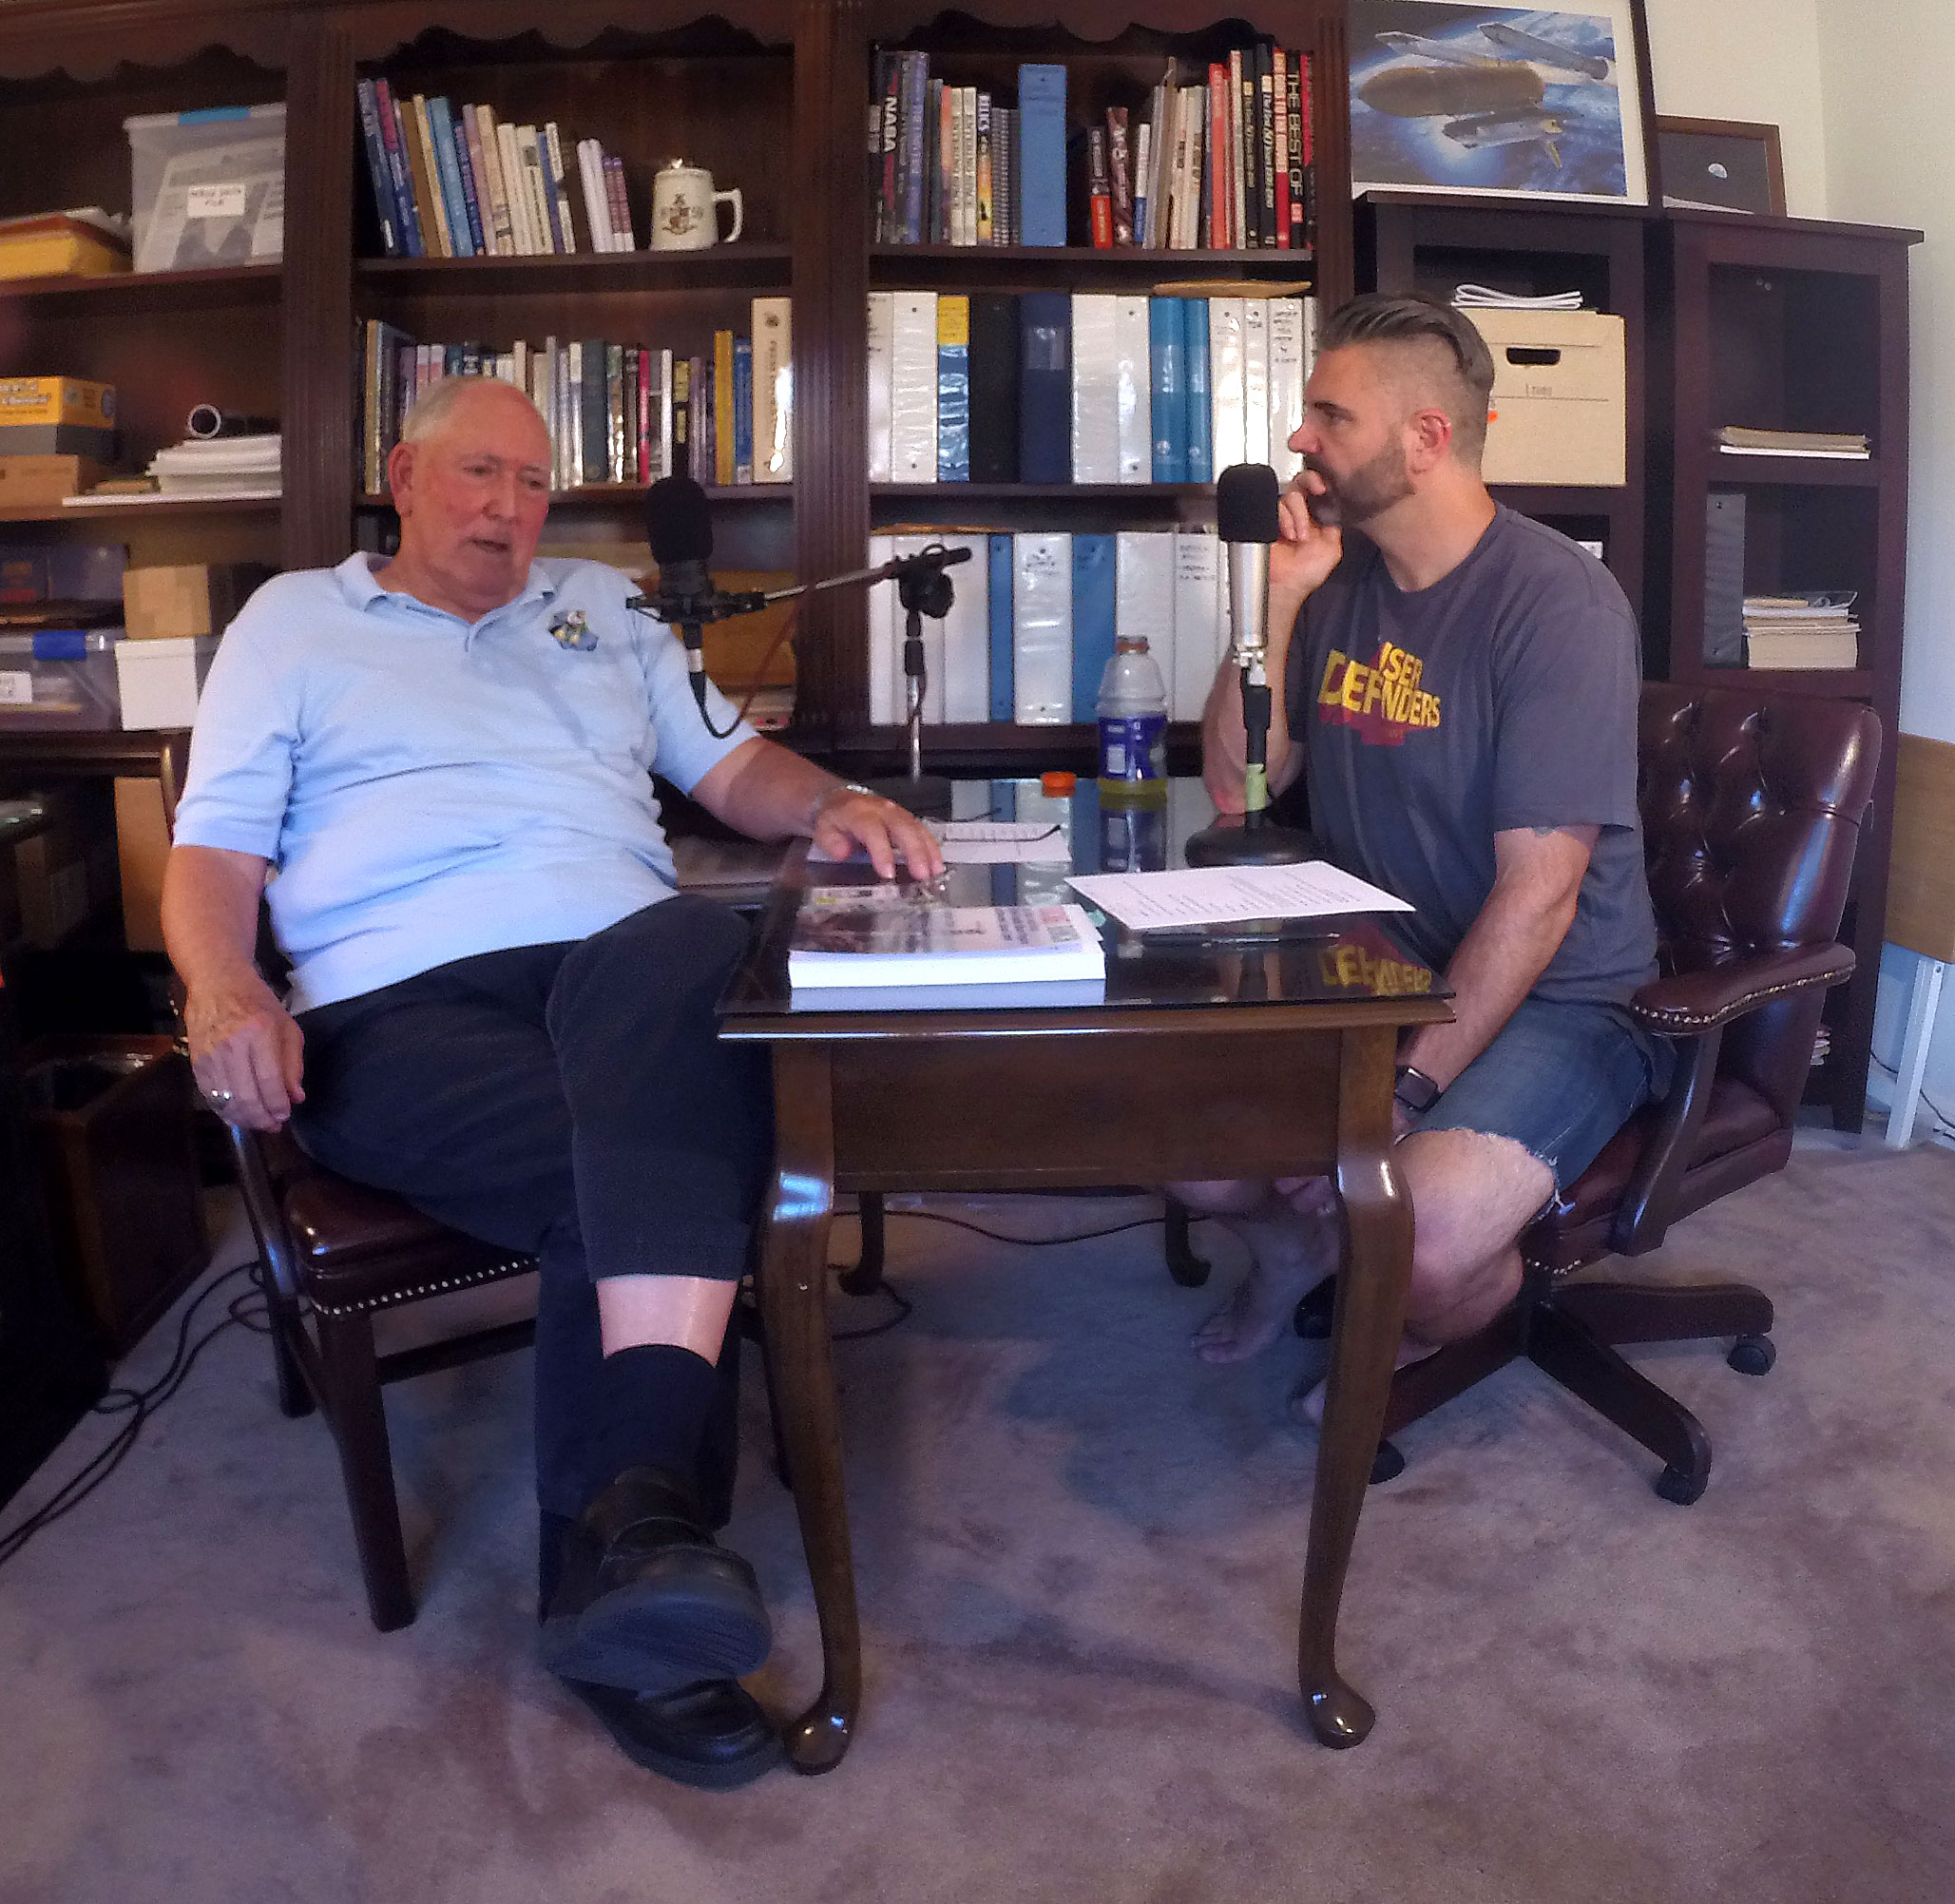 Proudest moment for me as a podcaster was interviewing my Pop in his office in Merritt Island, FL the day after his 80th Bday.